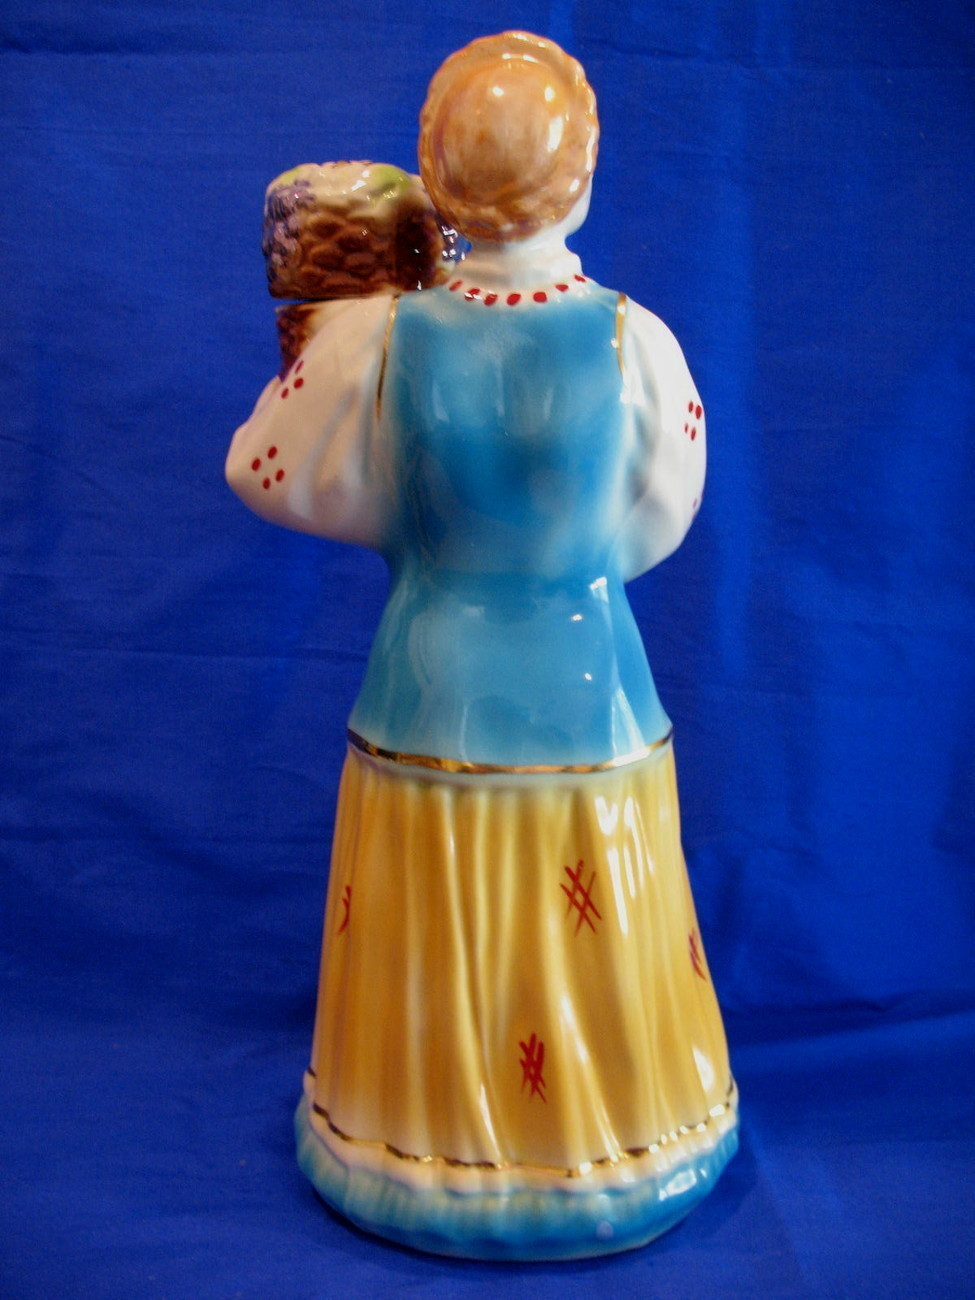 Vintage Russian Vodka Decanter Barware Collector Old Russia Baba Woman Souvenir